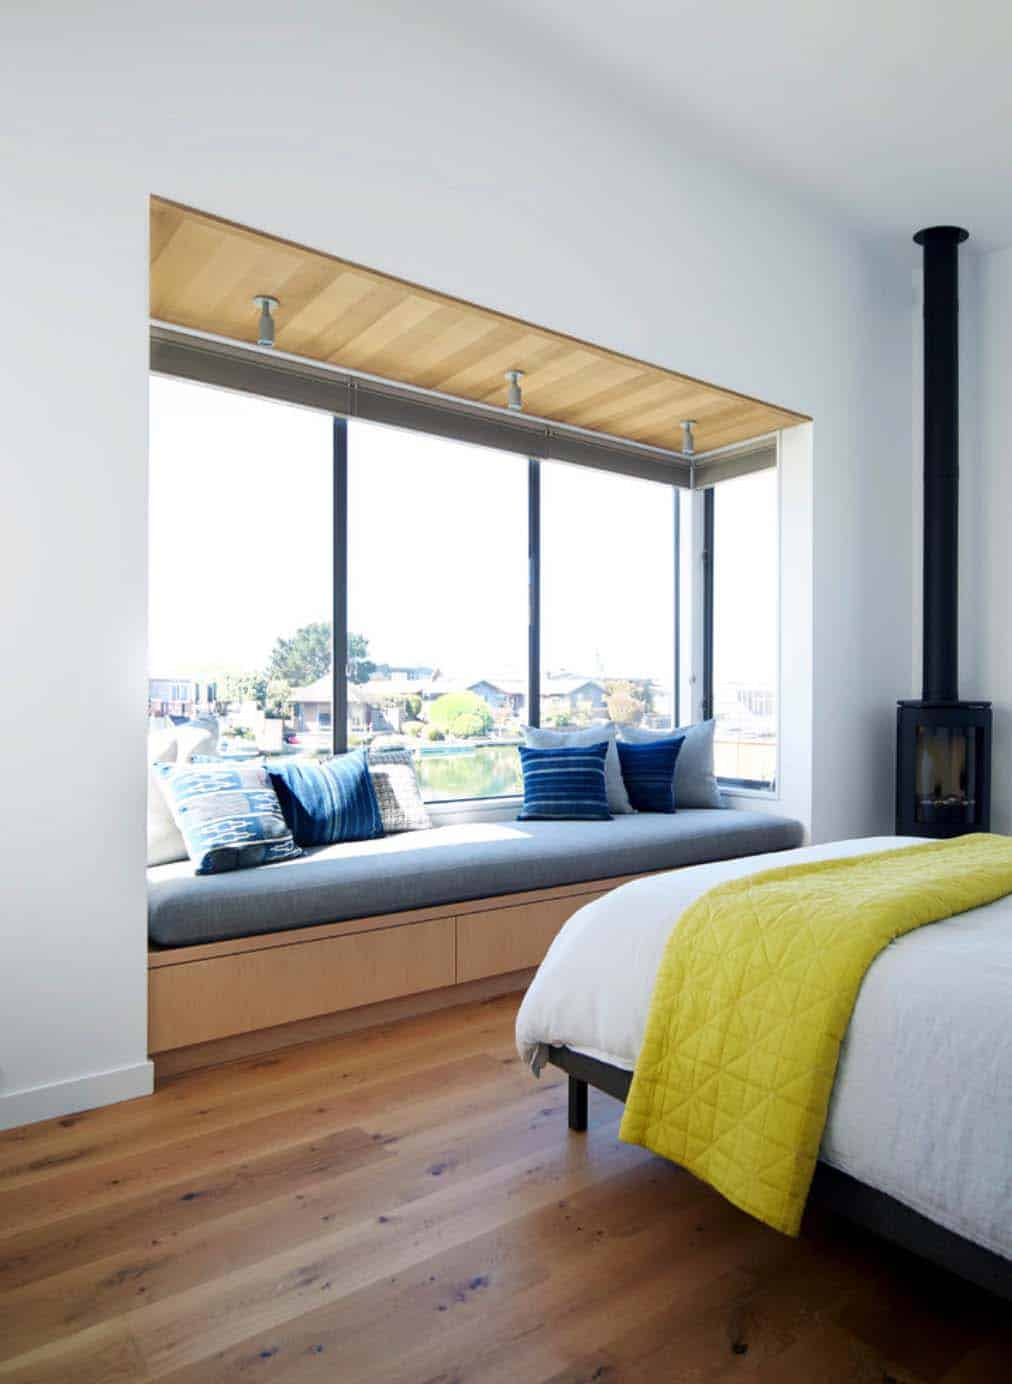 stinson-beach-lagoon-residence-turnbull-griffin-haesloop-11-1-kindesign